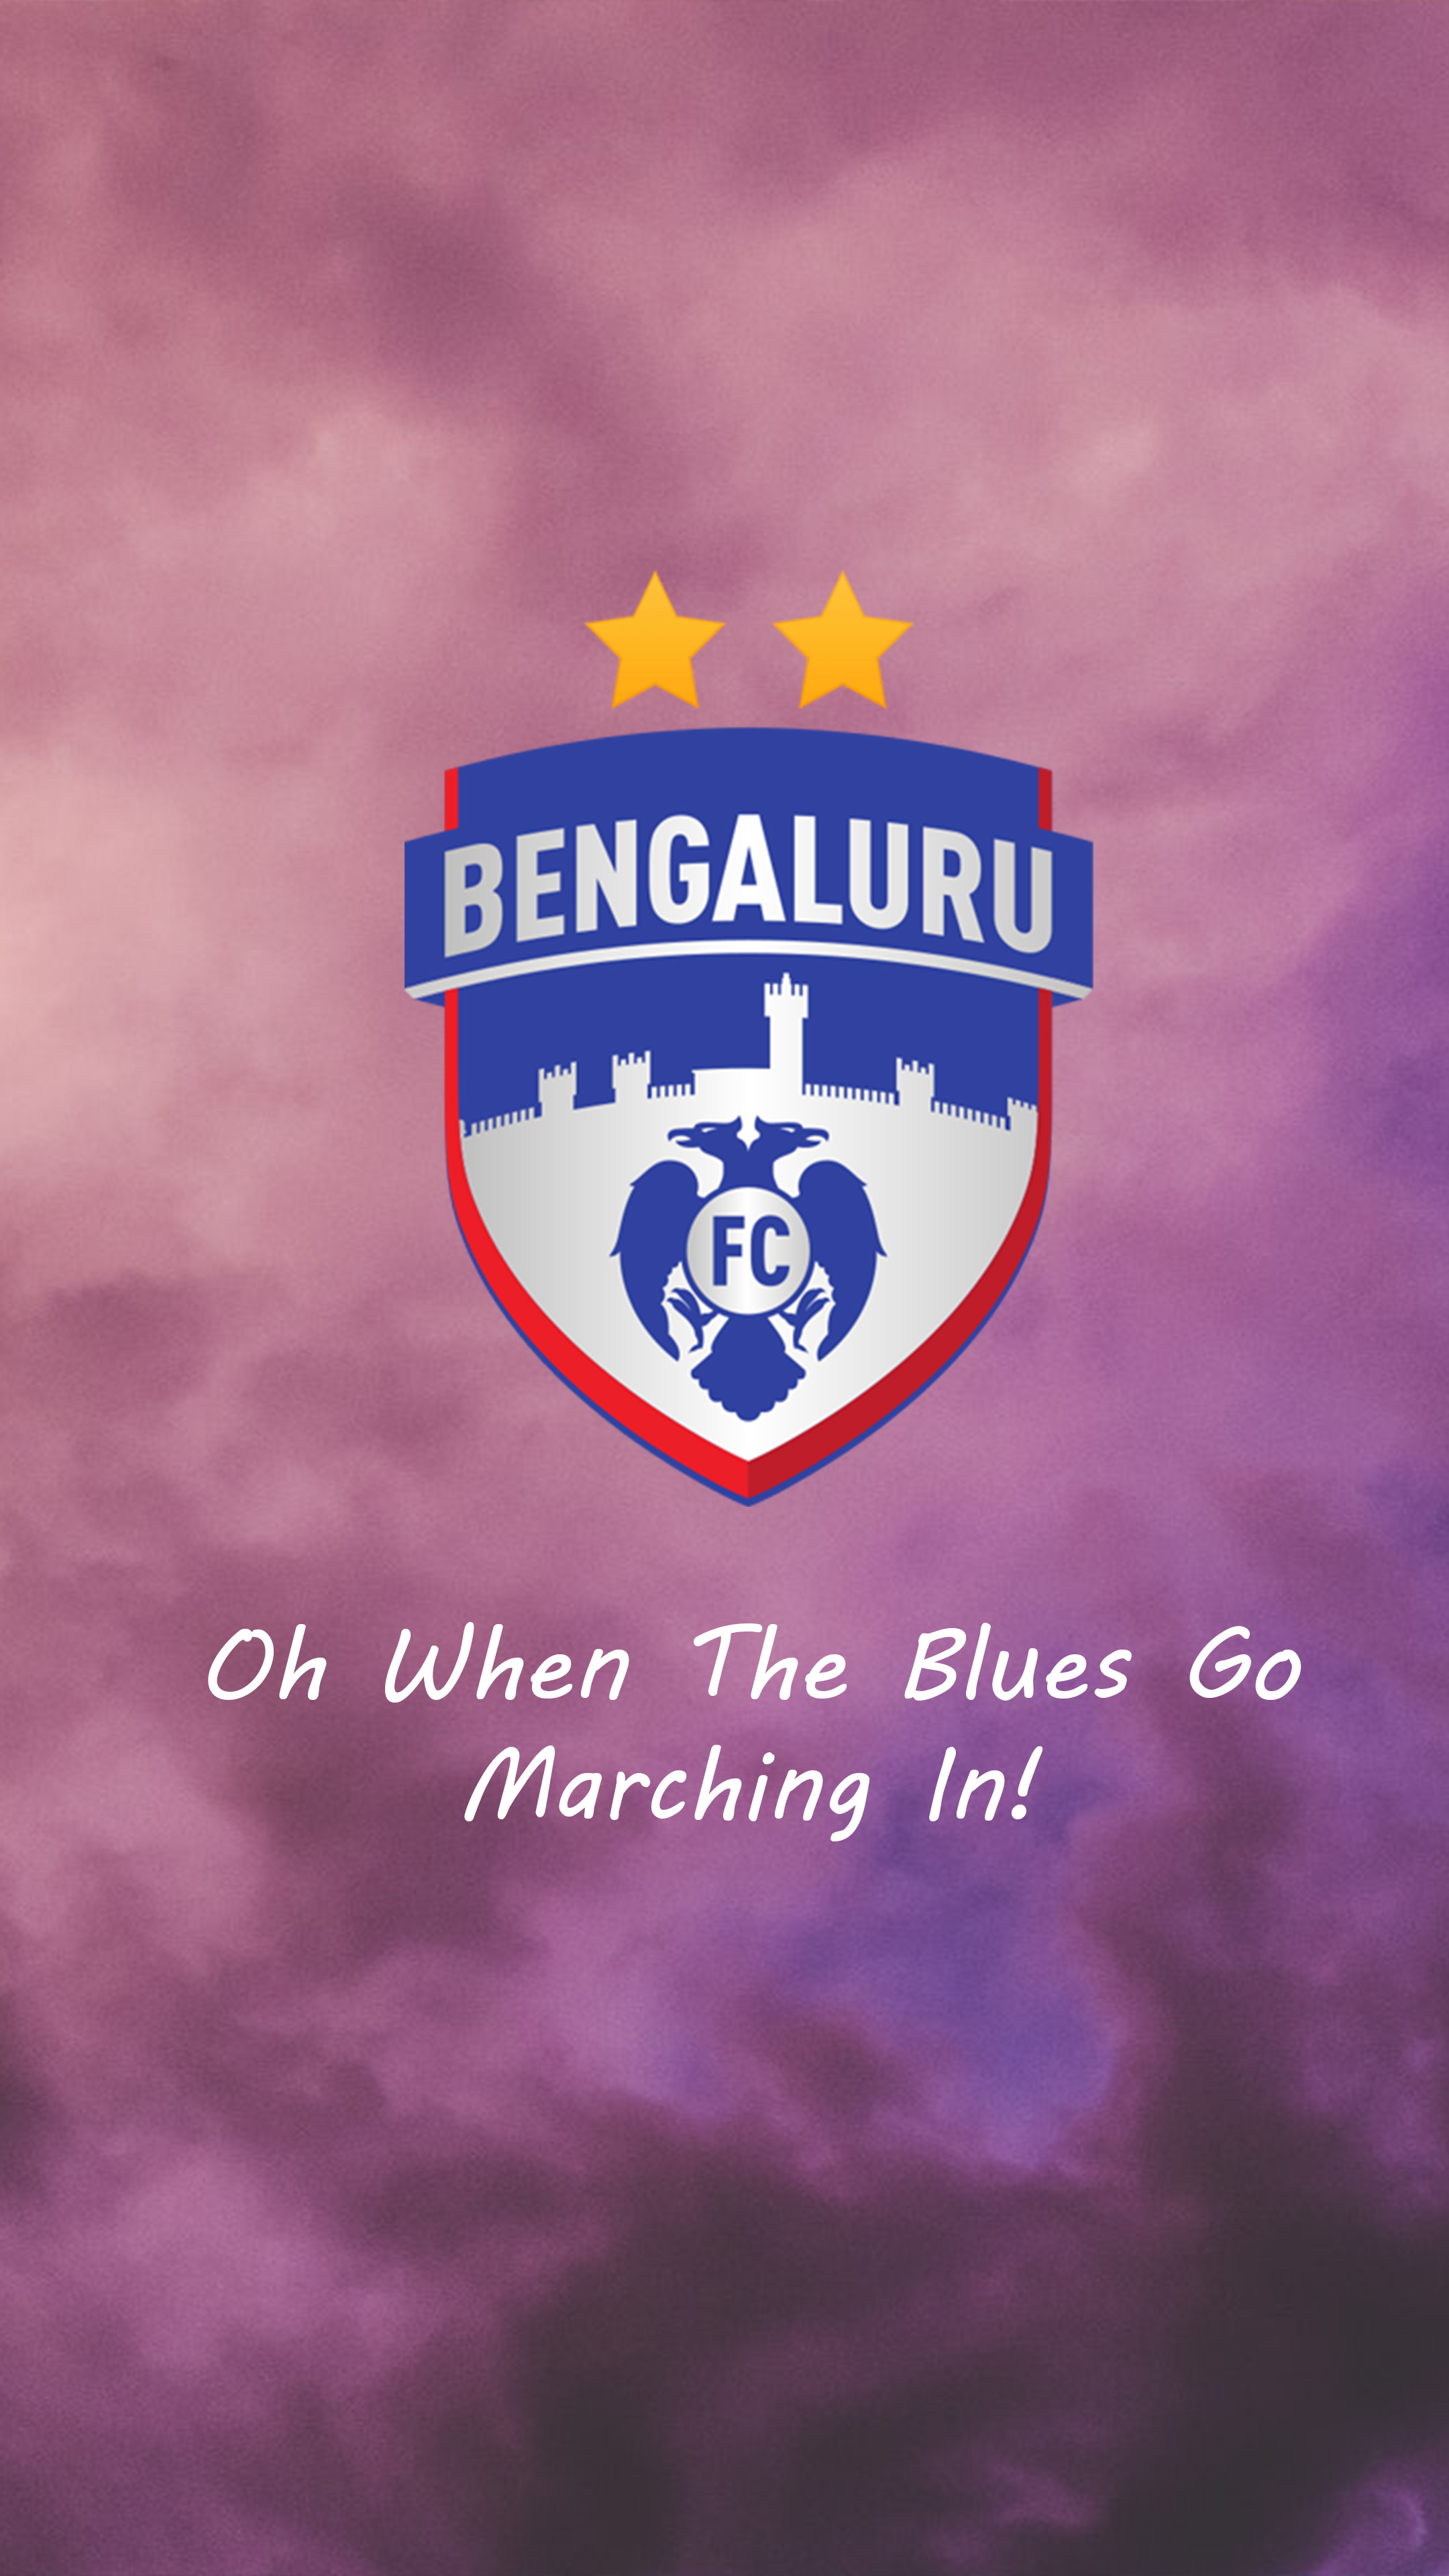 Download Bengaluru Fc Free Pure 4k Ultra Hd Mobile Wallpaper